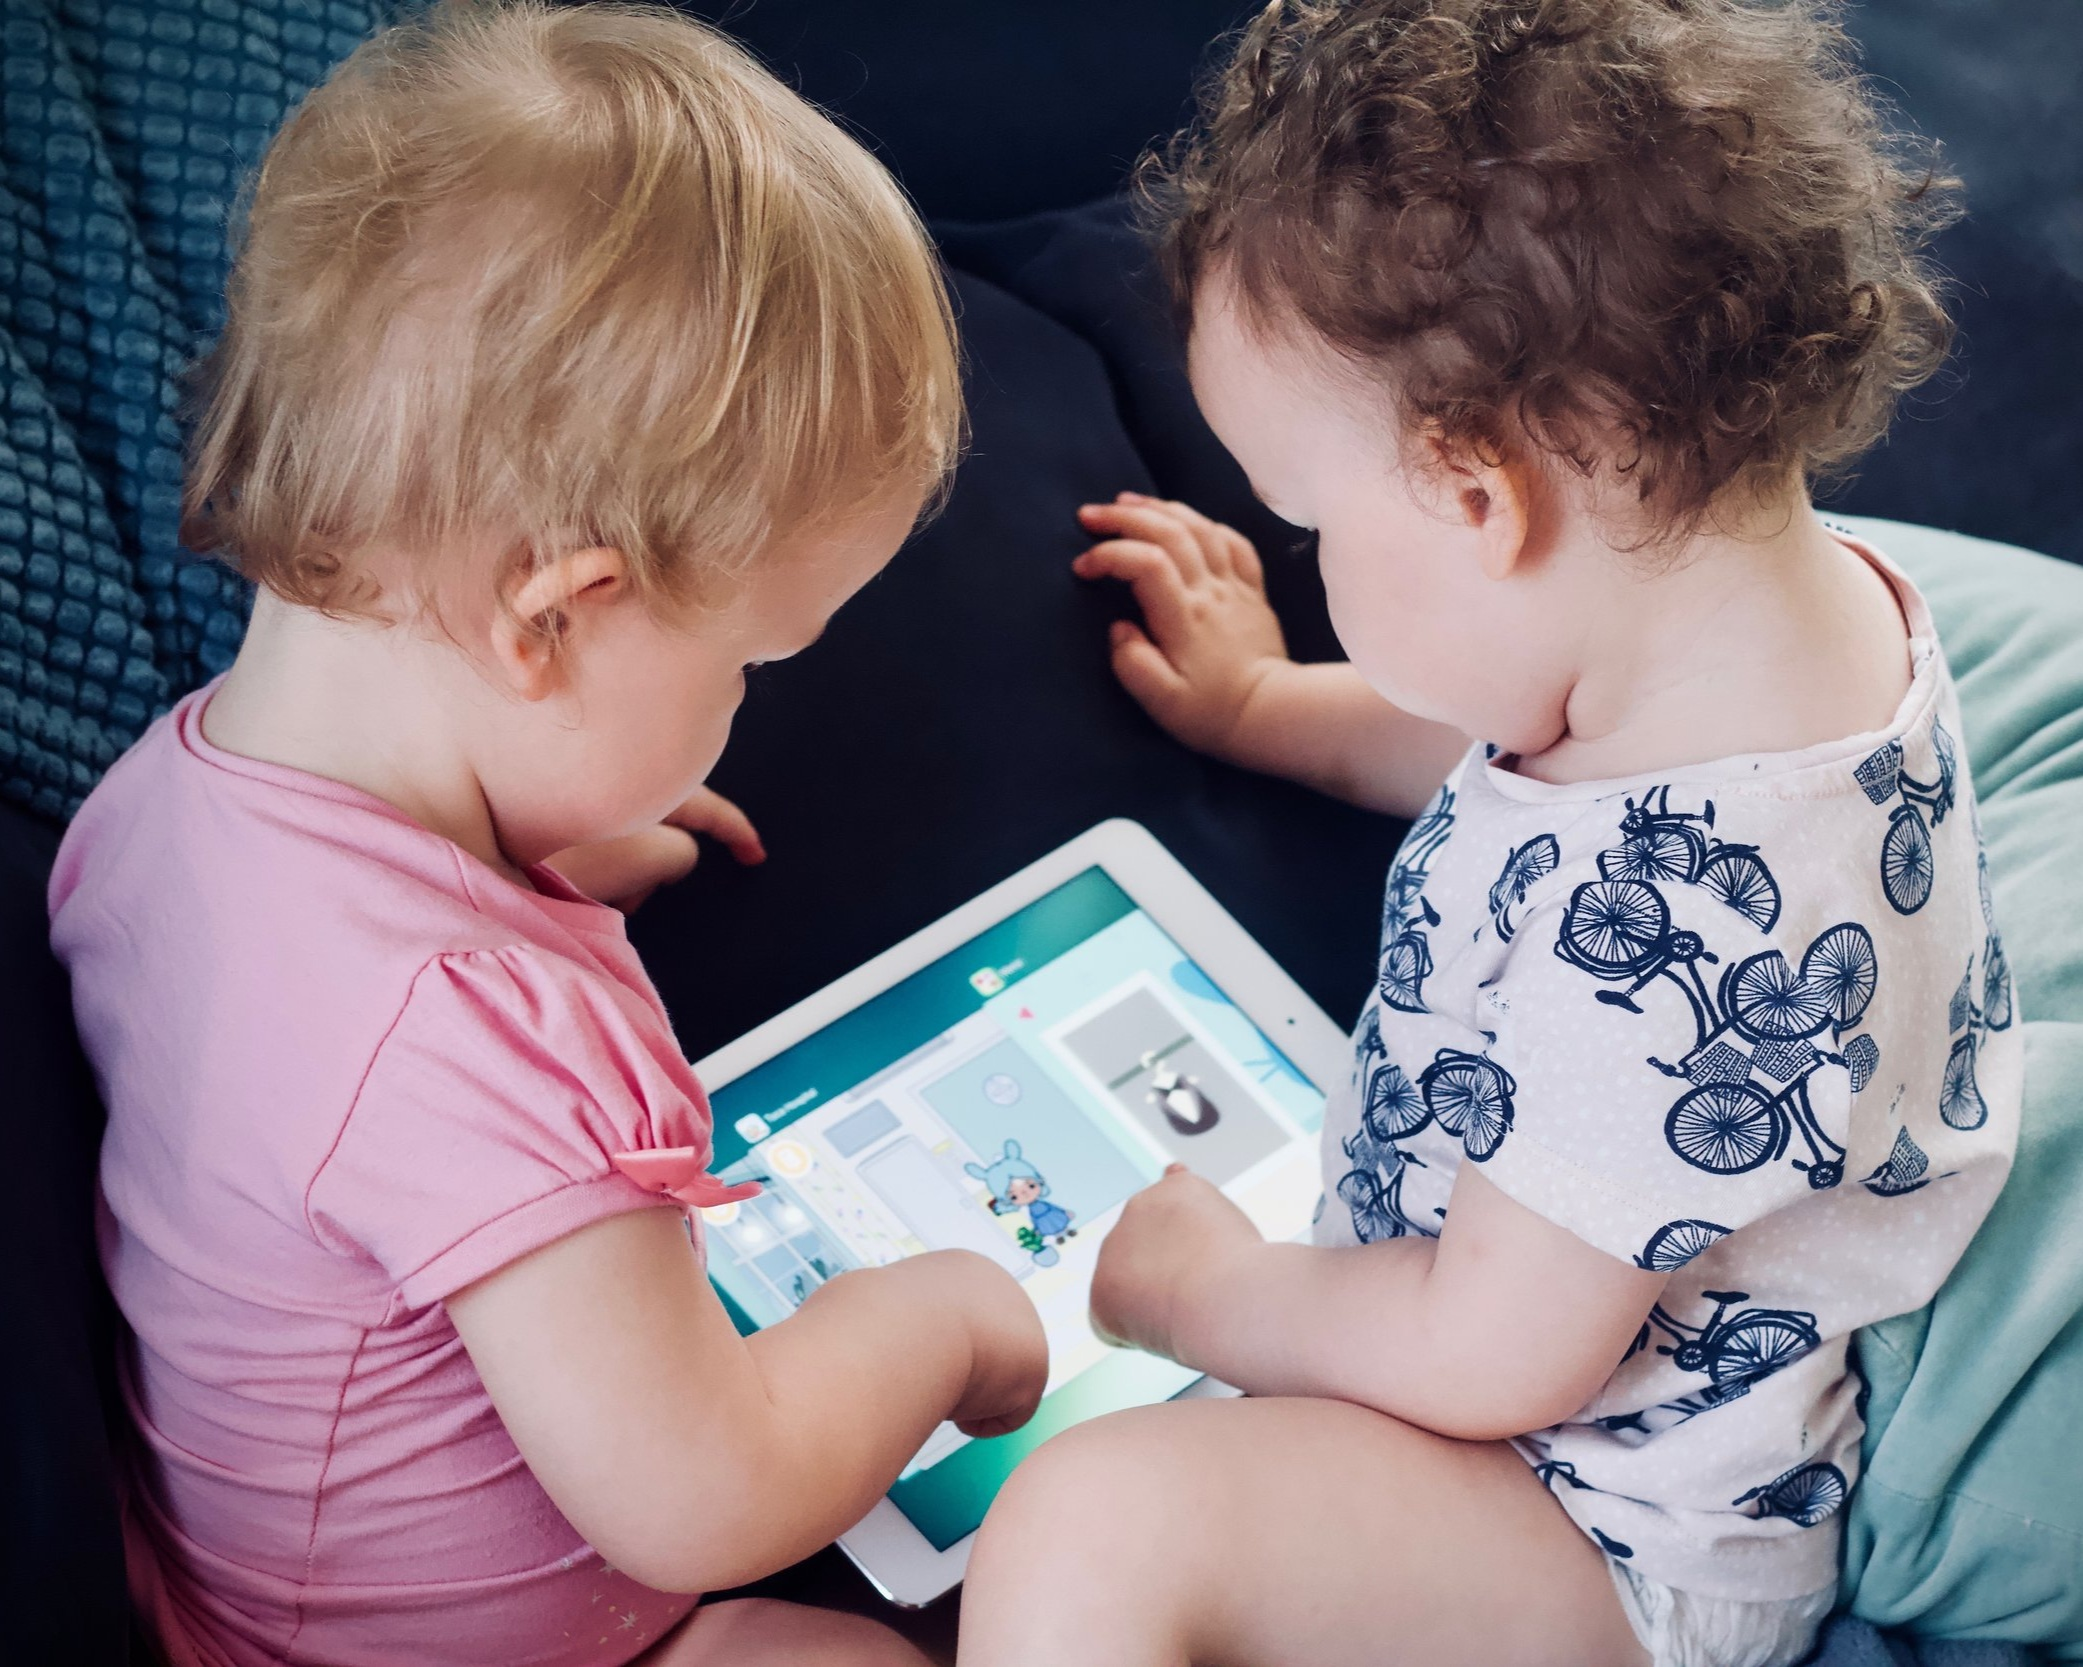 for kids - 10 Educational Apps Your Parents Will Love. Technology isn't ALL bad. Here are some great apps that even your parents will approve!